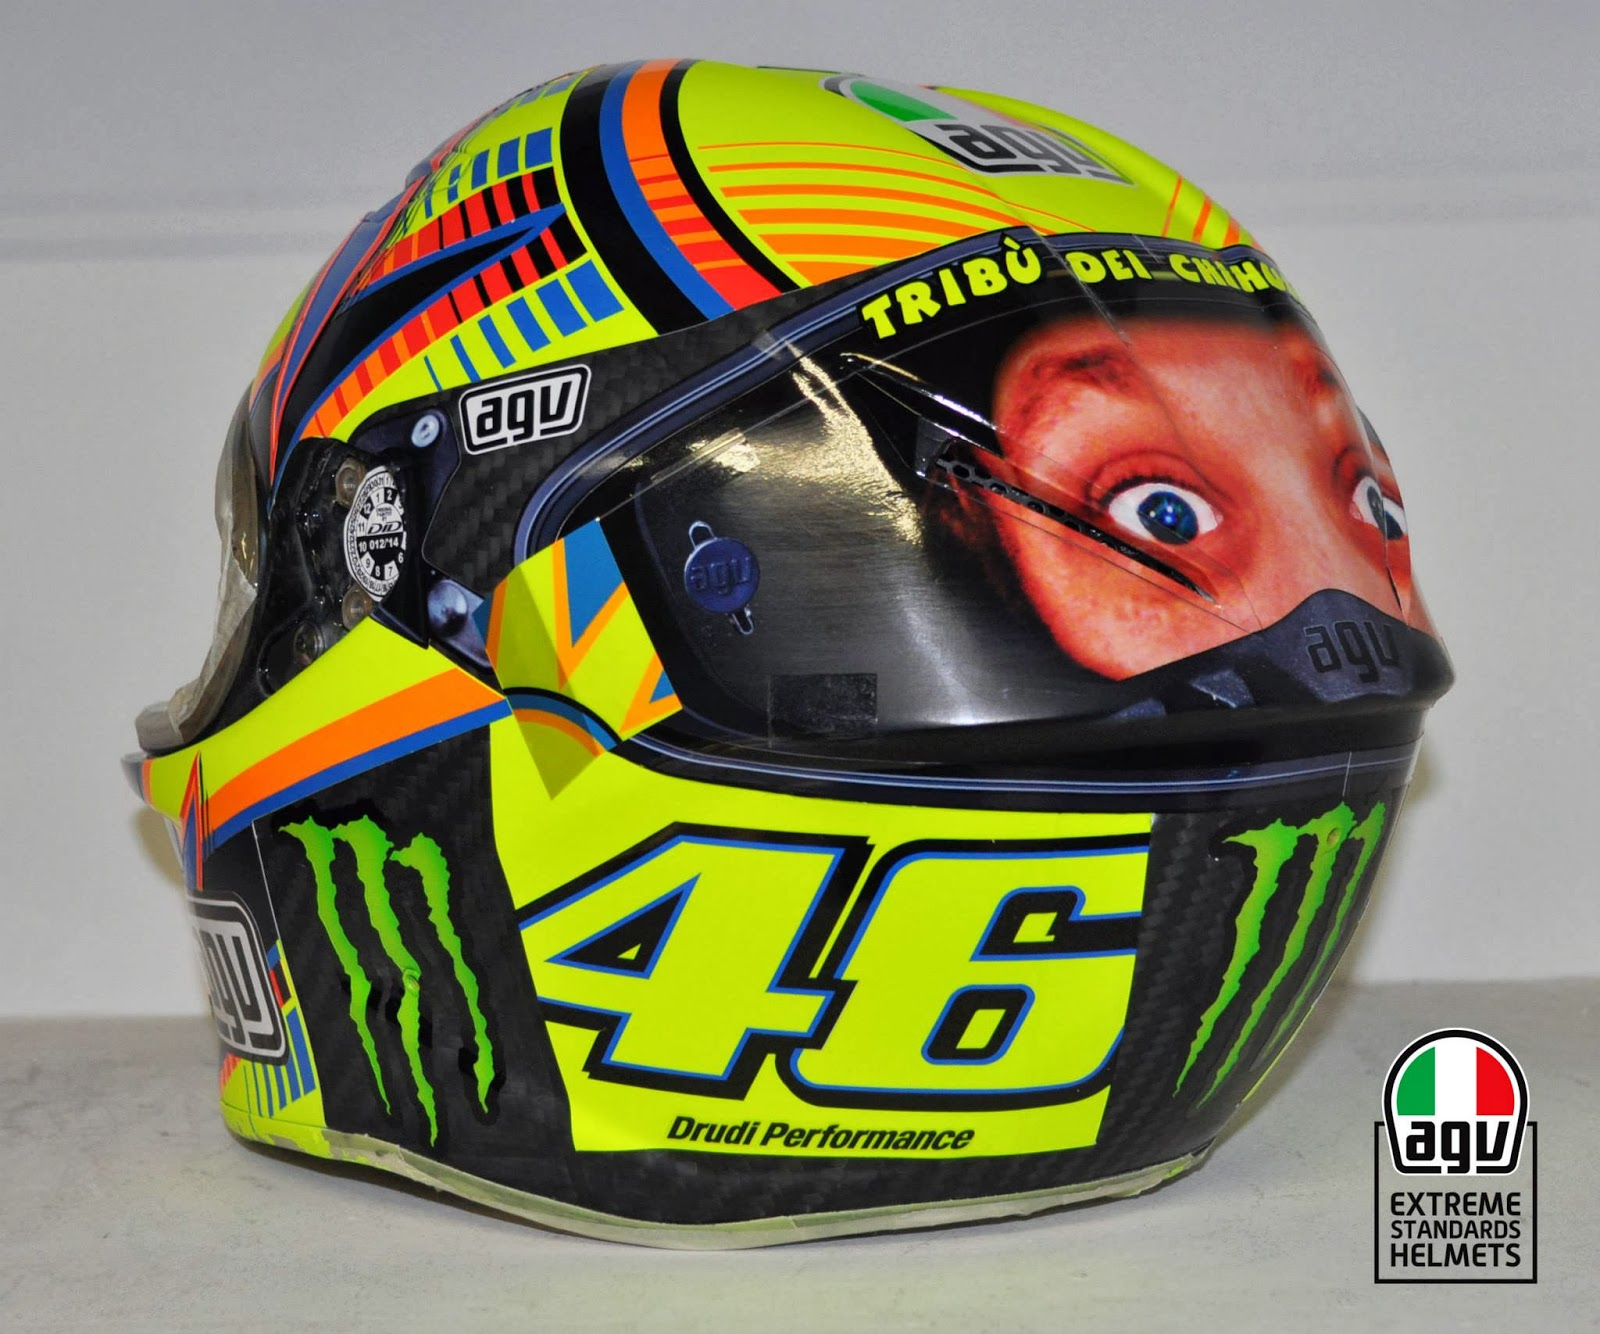 champion helmets valentino rossi second eyes helmet. Black Bedroom Furniture Sets. Home Design Ideas